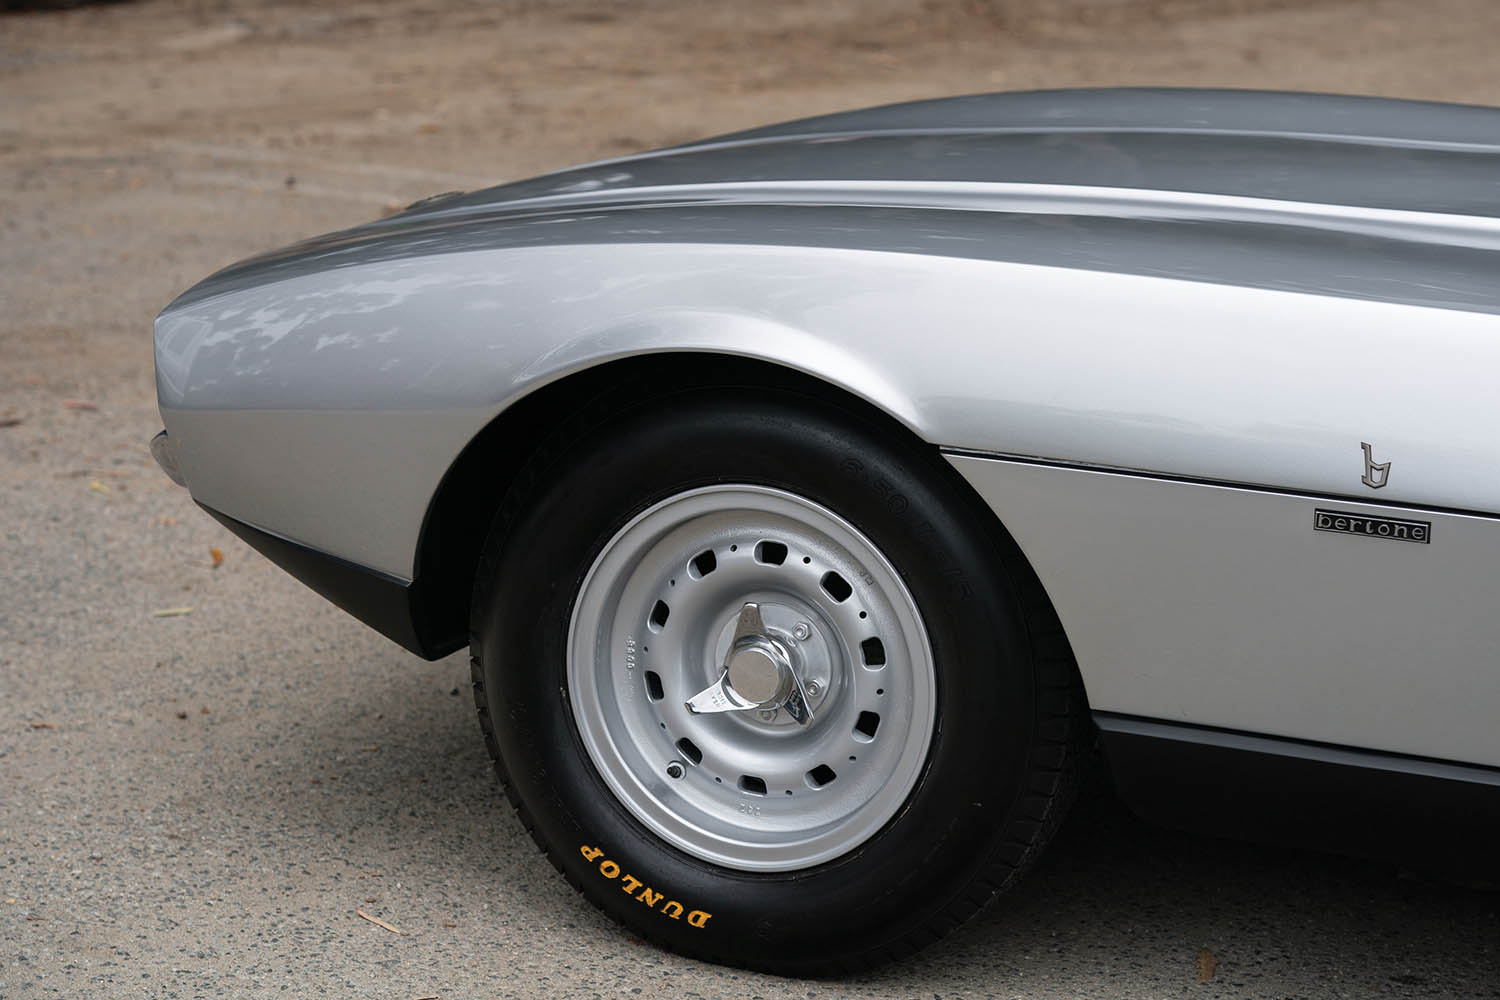 1967-Jaguar-Pirana-by-Bertone_25.jpg